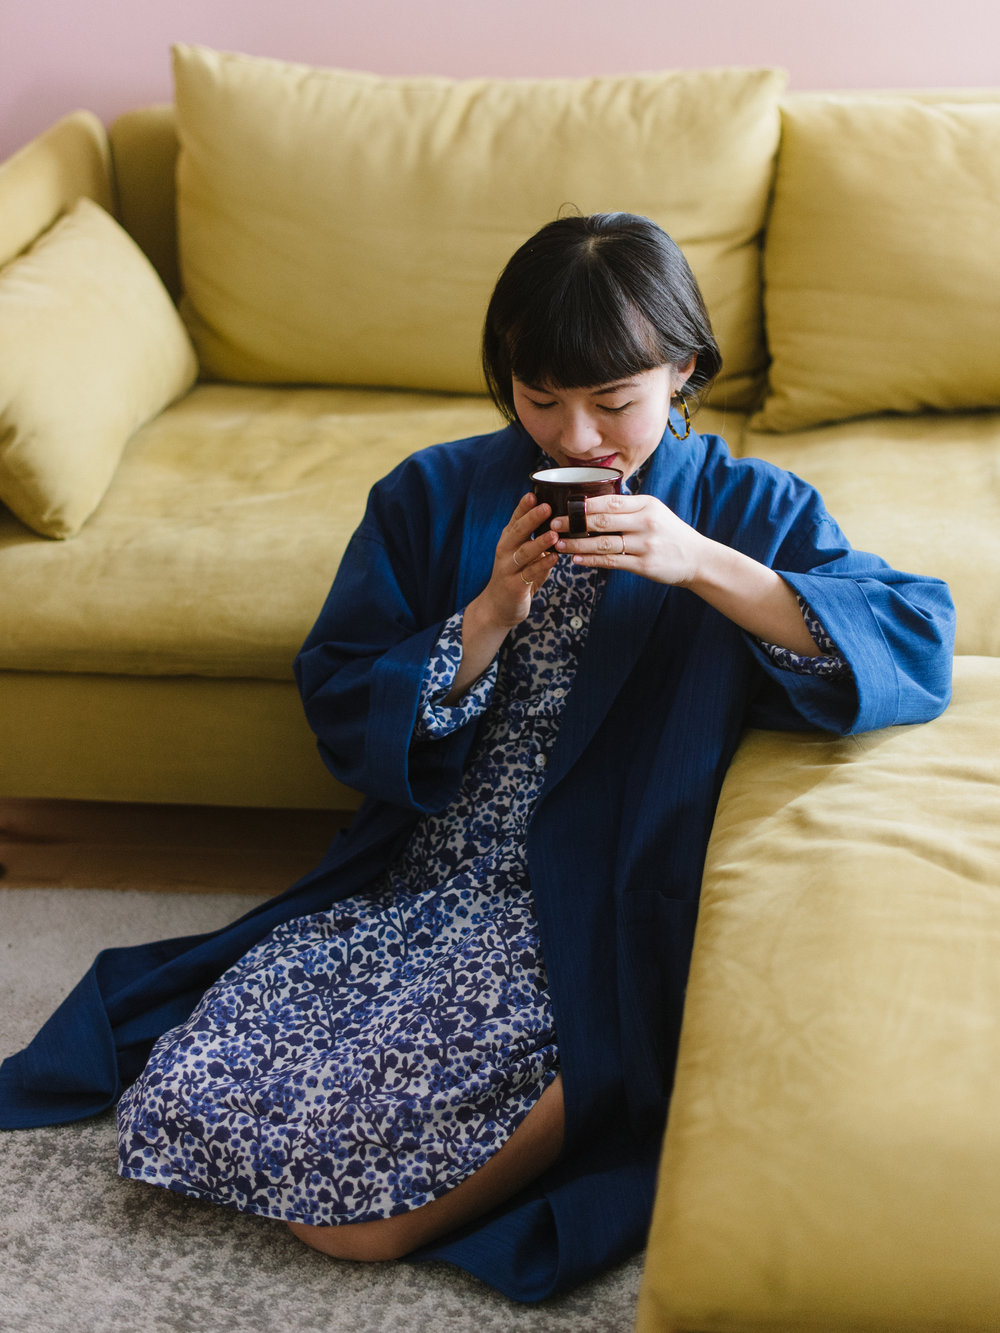 A moment for tea in her  Katherine Shirt Dress  and her  Blue Blue Japan  jacket